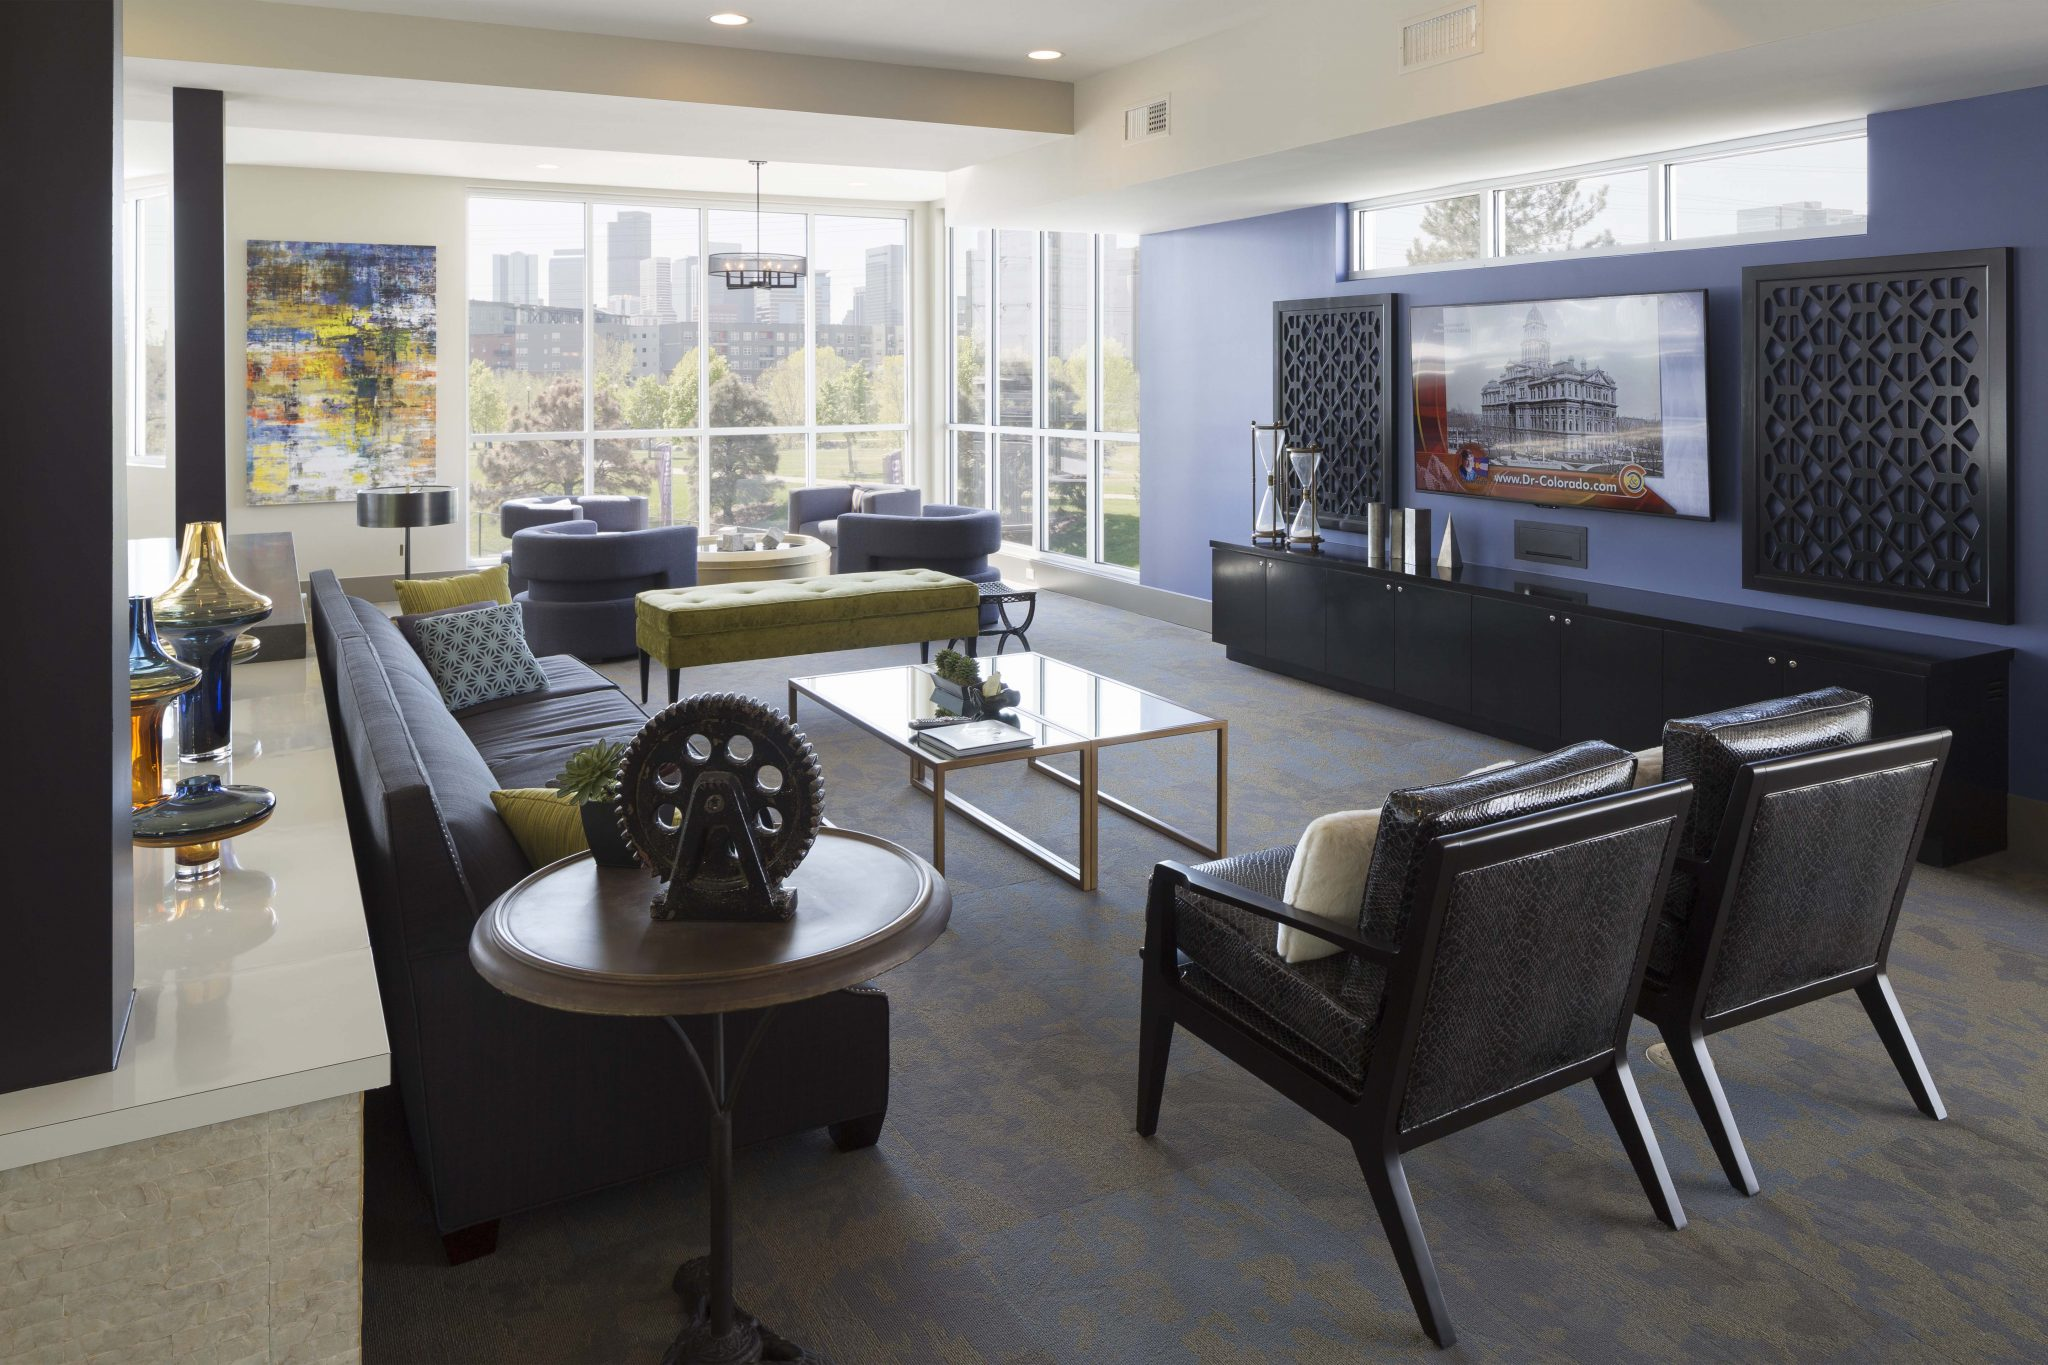 Interior of common area with couch, modern chairs and large-screen television.